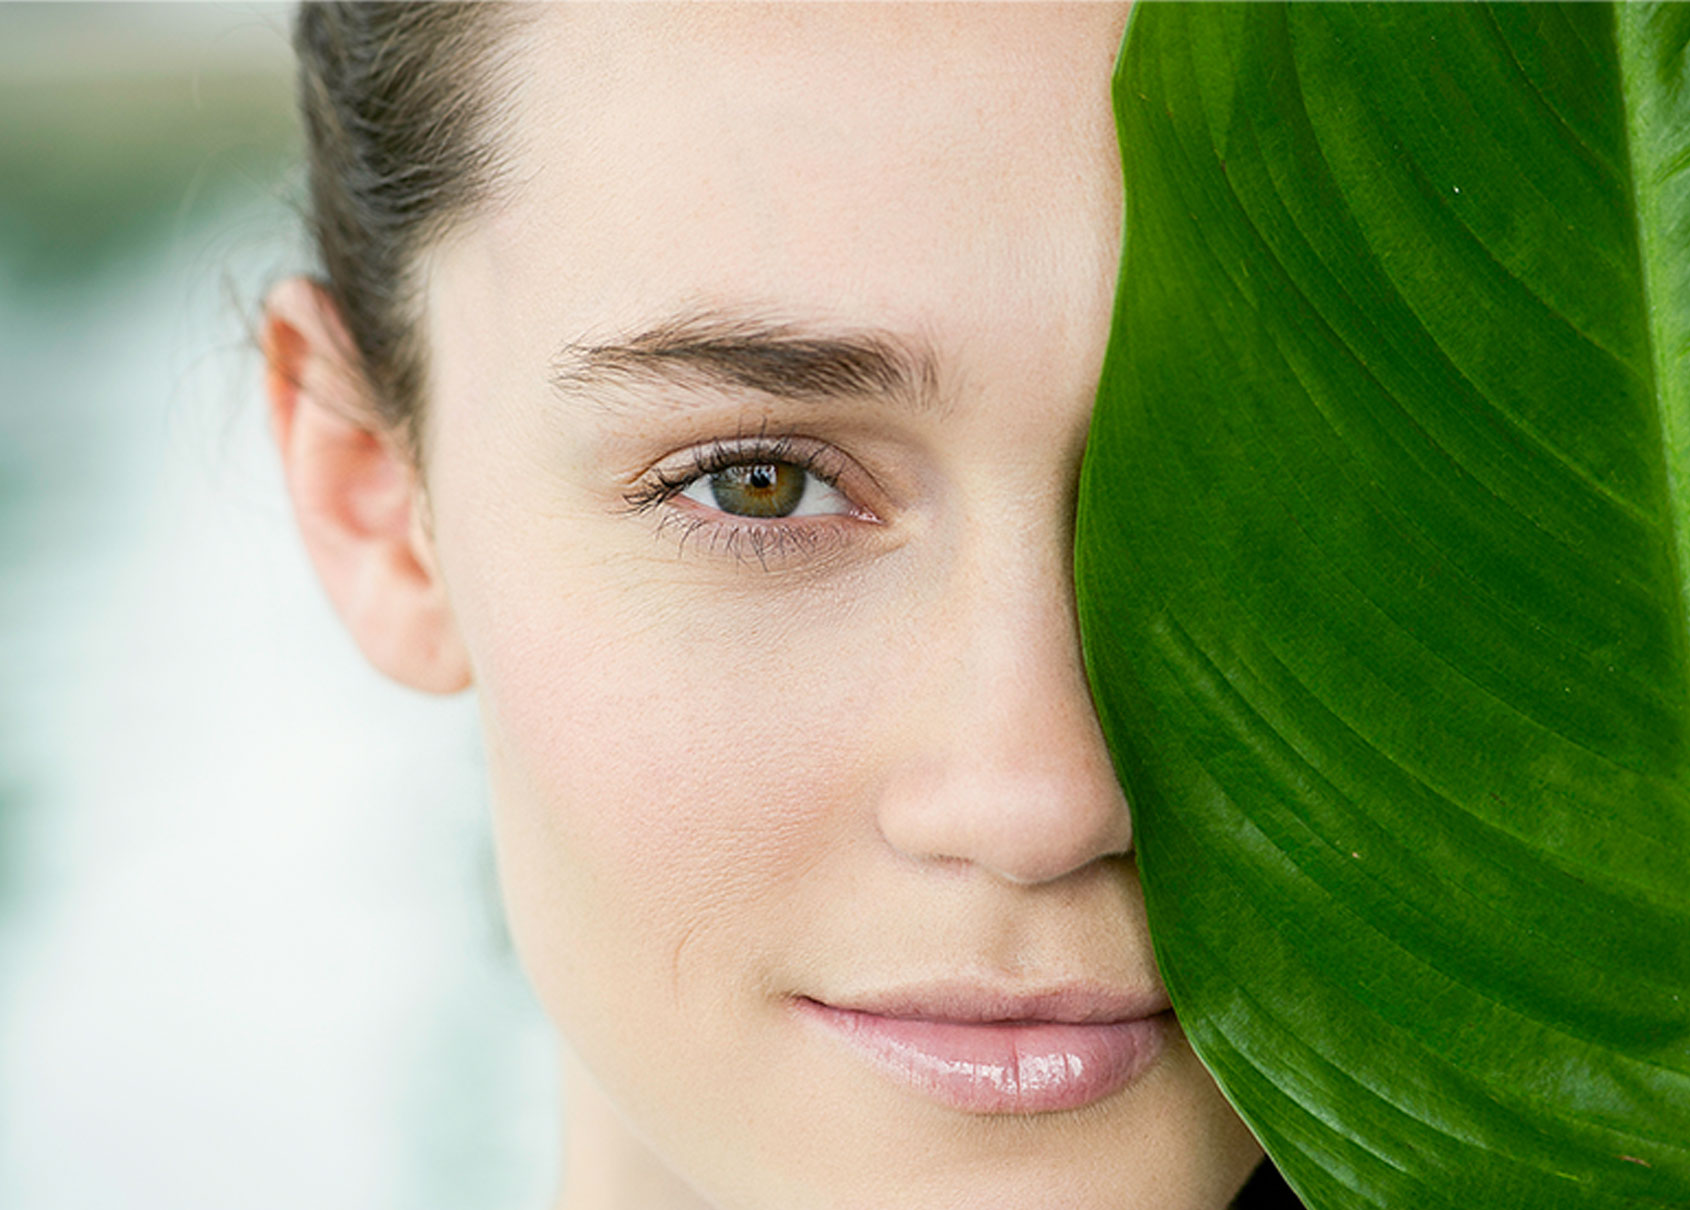 We understand and enhance your natural beauty - After extensive research by a UCLA molecular scientist, we are the first company in the market to analyze your skin profile at the molecular level and match you with our scientifically-proven active ingredients. All organic/eco-friendly ingredients come together to create a formula that is uniquely yours.